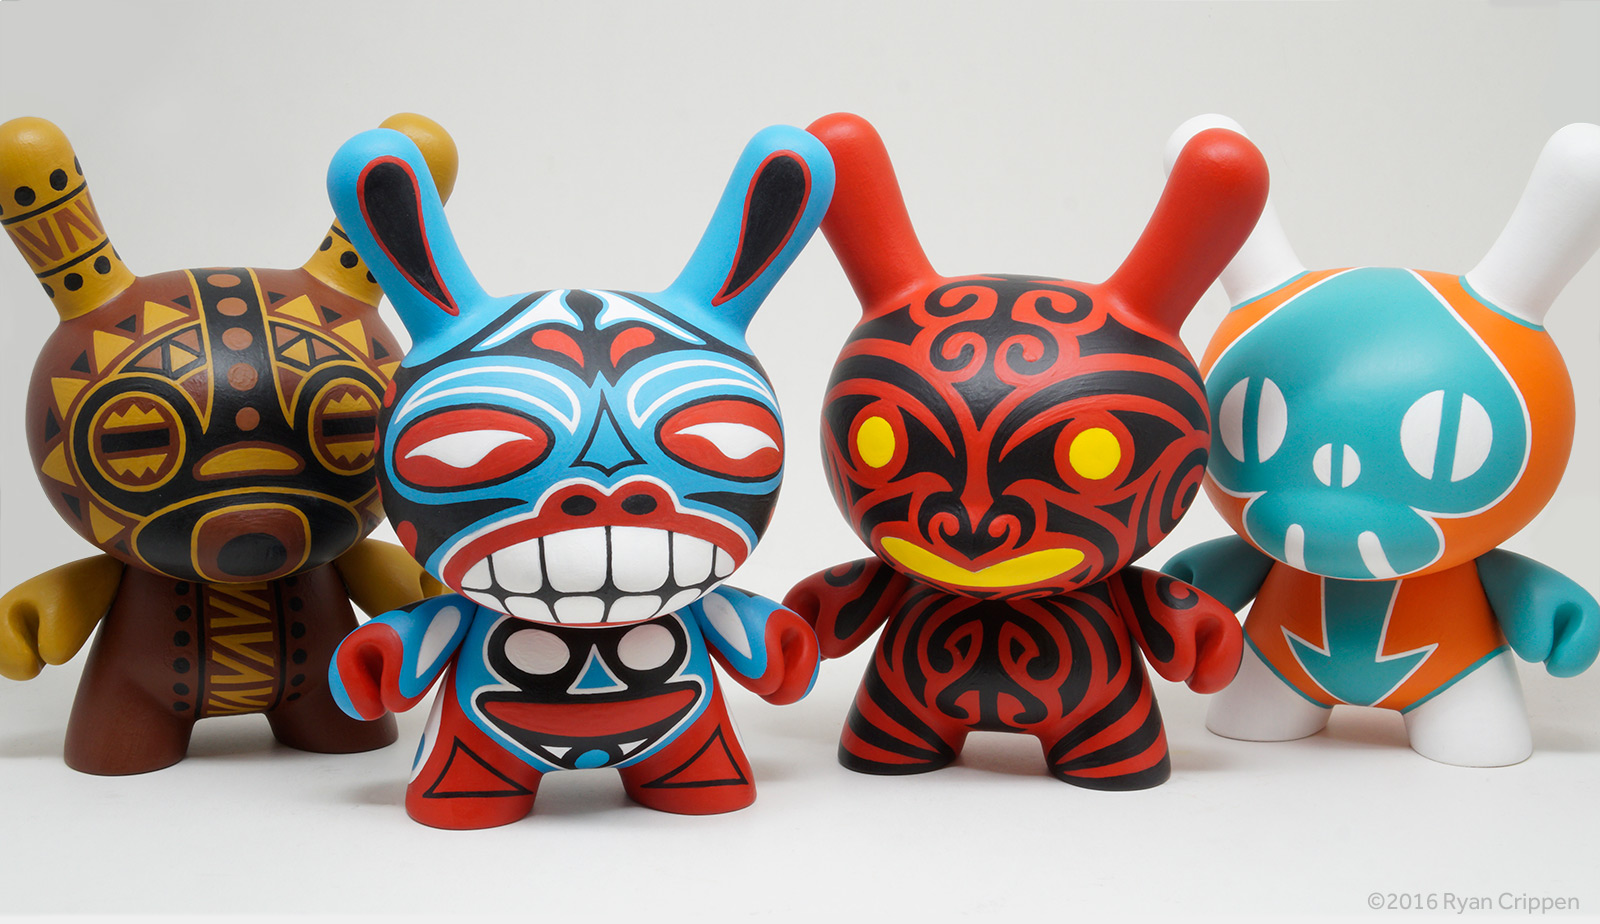 NYCC Dunnys - MPH Promo Pic : Reactor-88 Blog